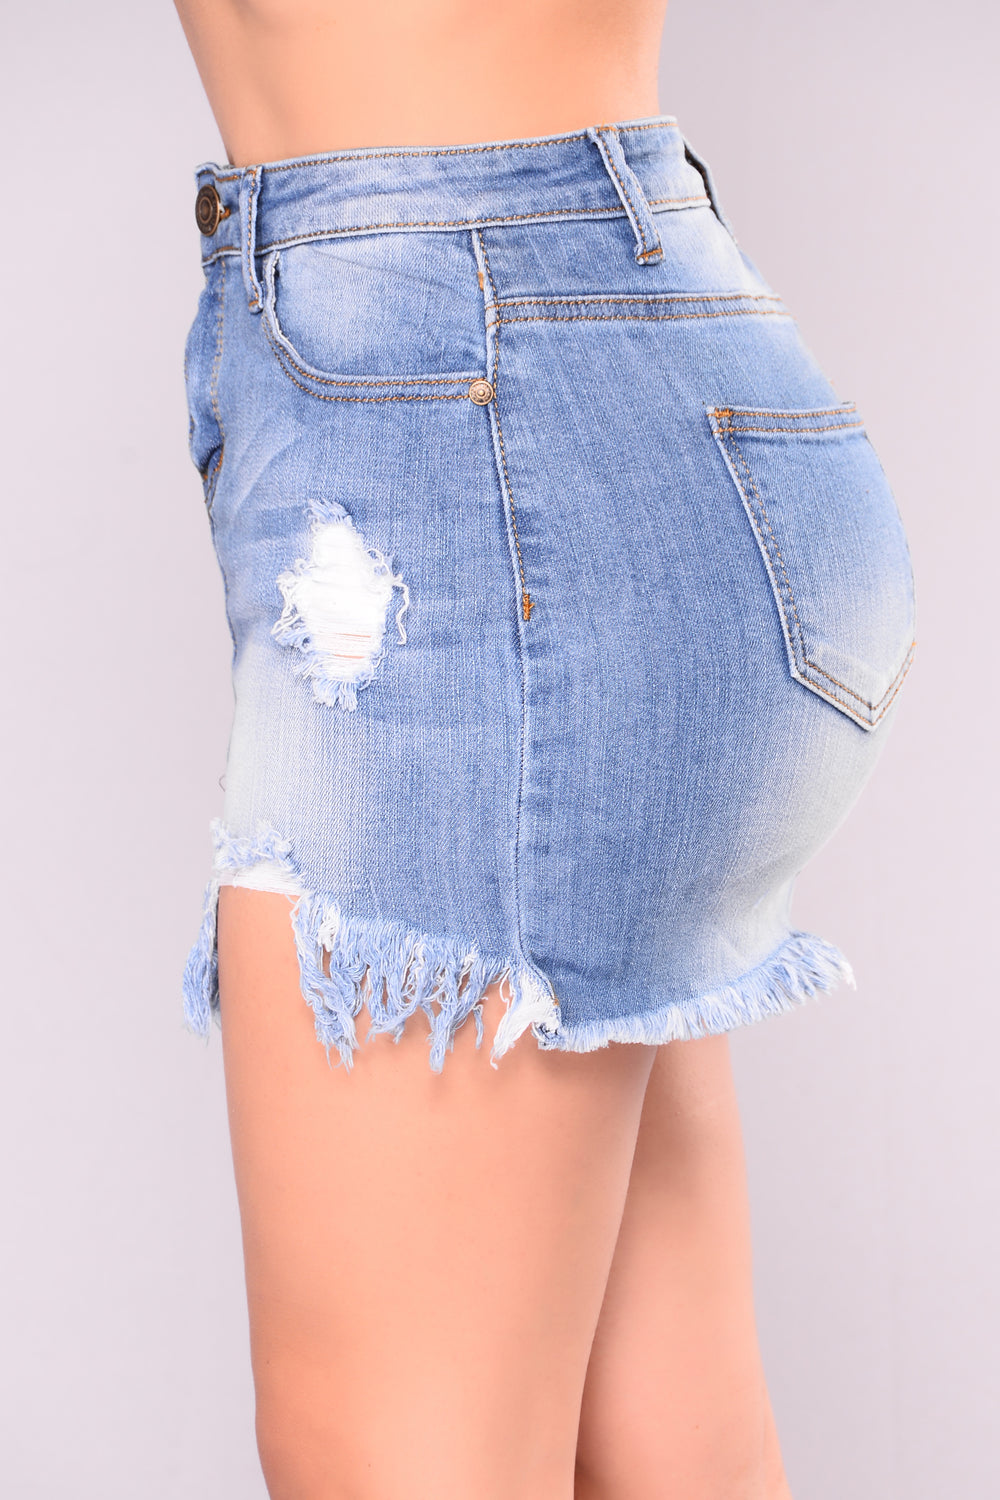 Just A Little Fray Denim Skirt - Medium